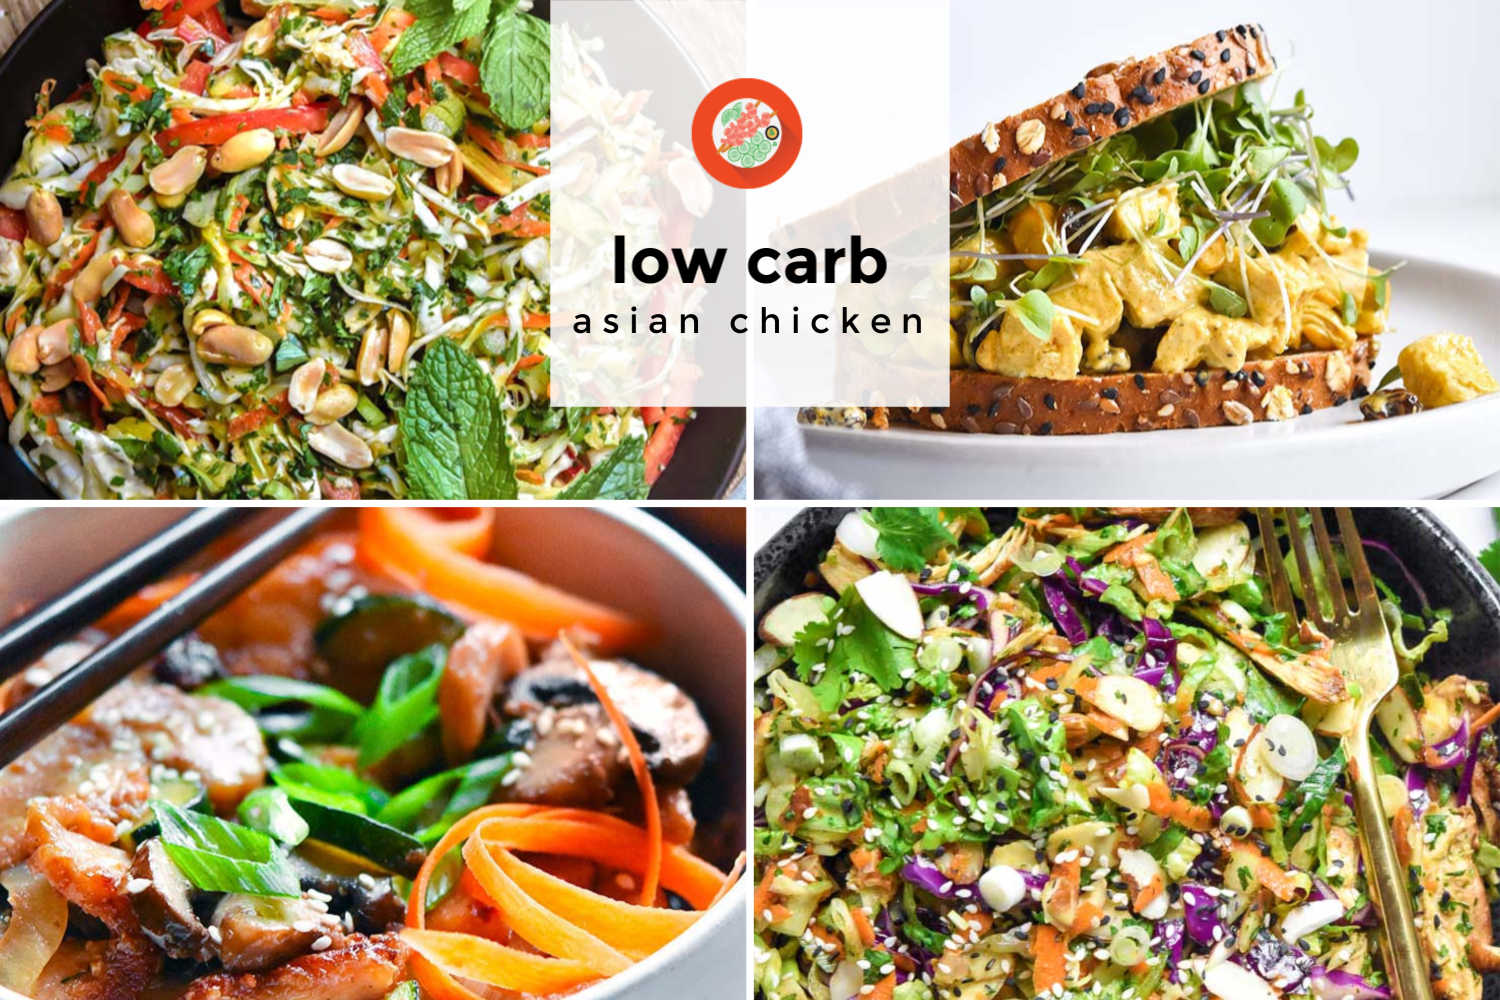 Low carb asian chicken